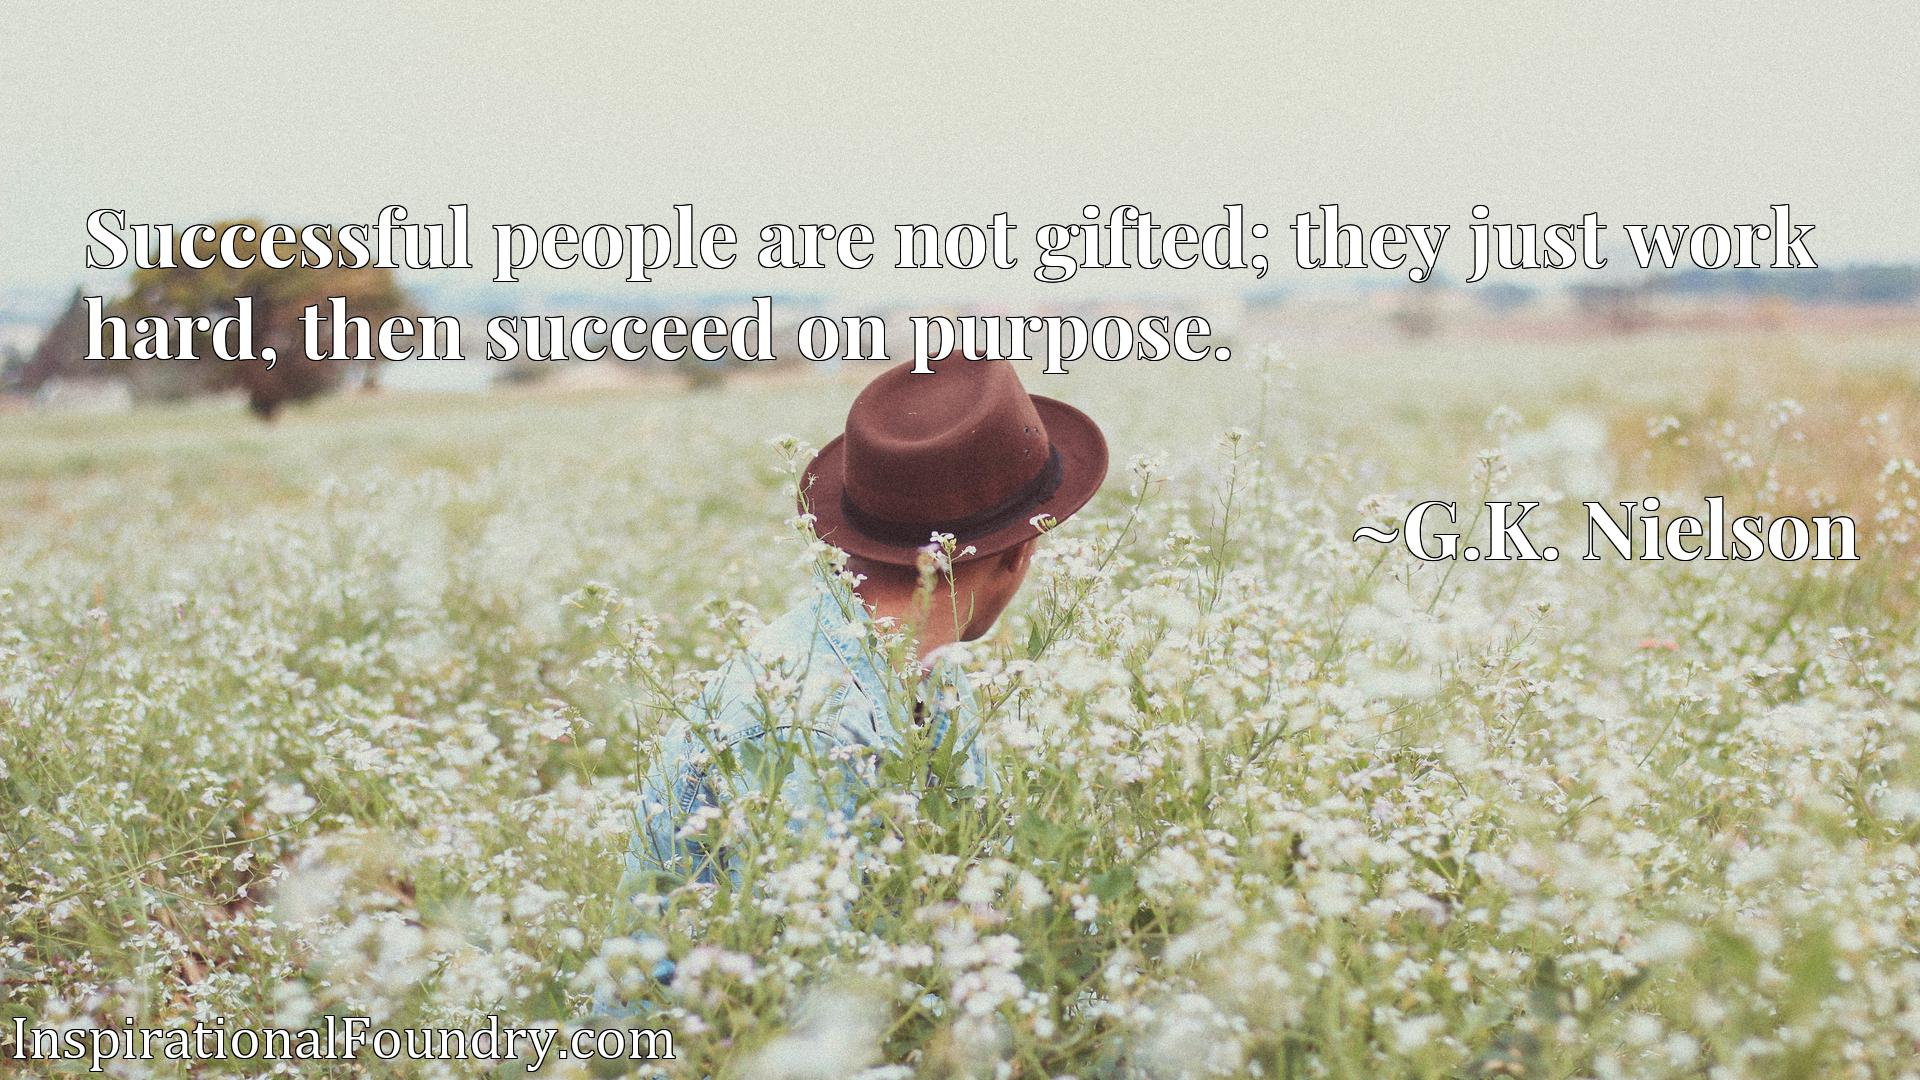 Quote Picture :Successful people are not gifted; they just work hard, then succeed on purpose.